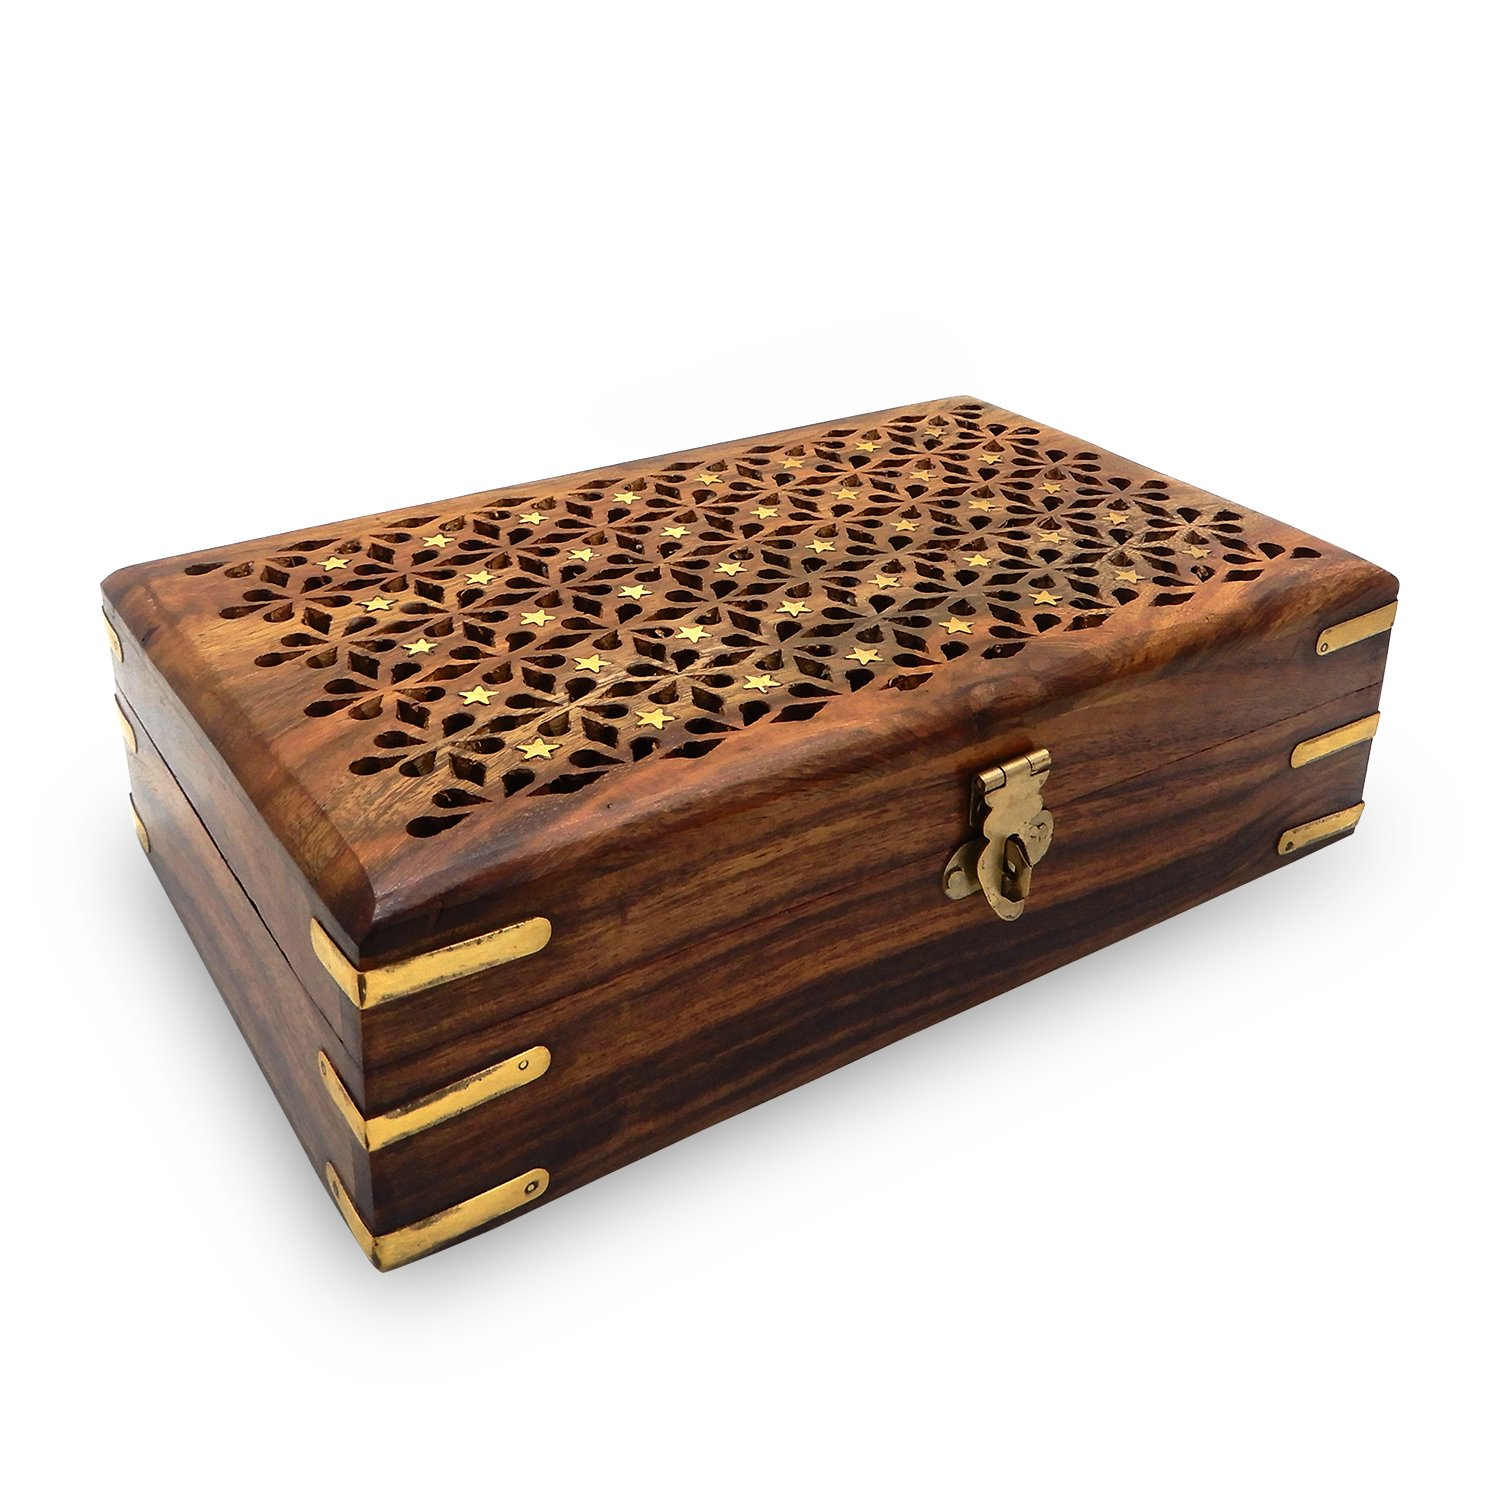 IndiaBigShop Wooden Jewelry Box For Keepsake Organizer With Jali Design and Brass Inlay With Velvet Interior 8 Inch